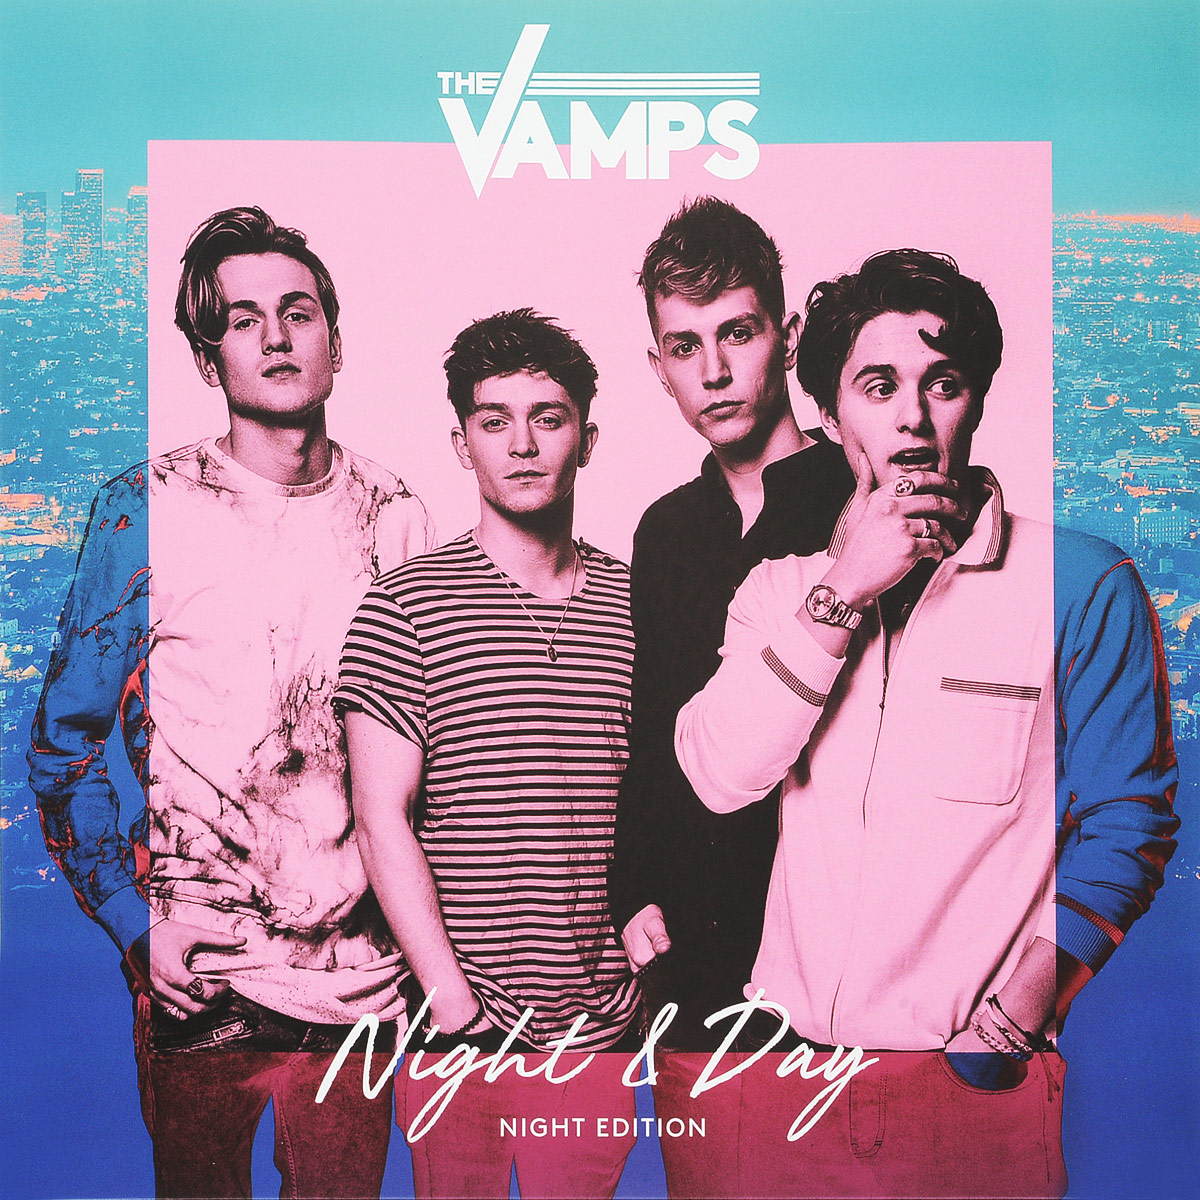 The Vamps The Vamps. Night & Day (Night Edition) (LP) the vamps leeds